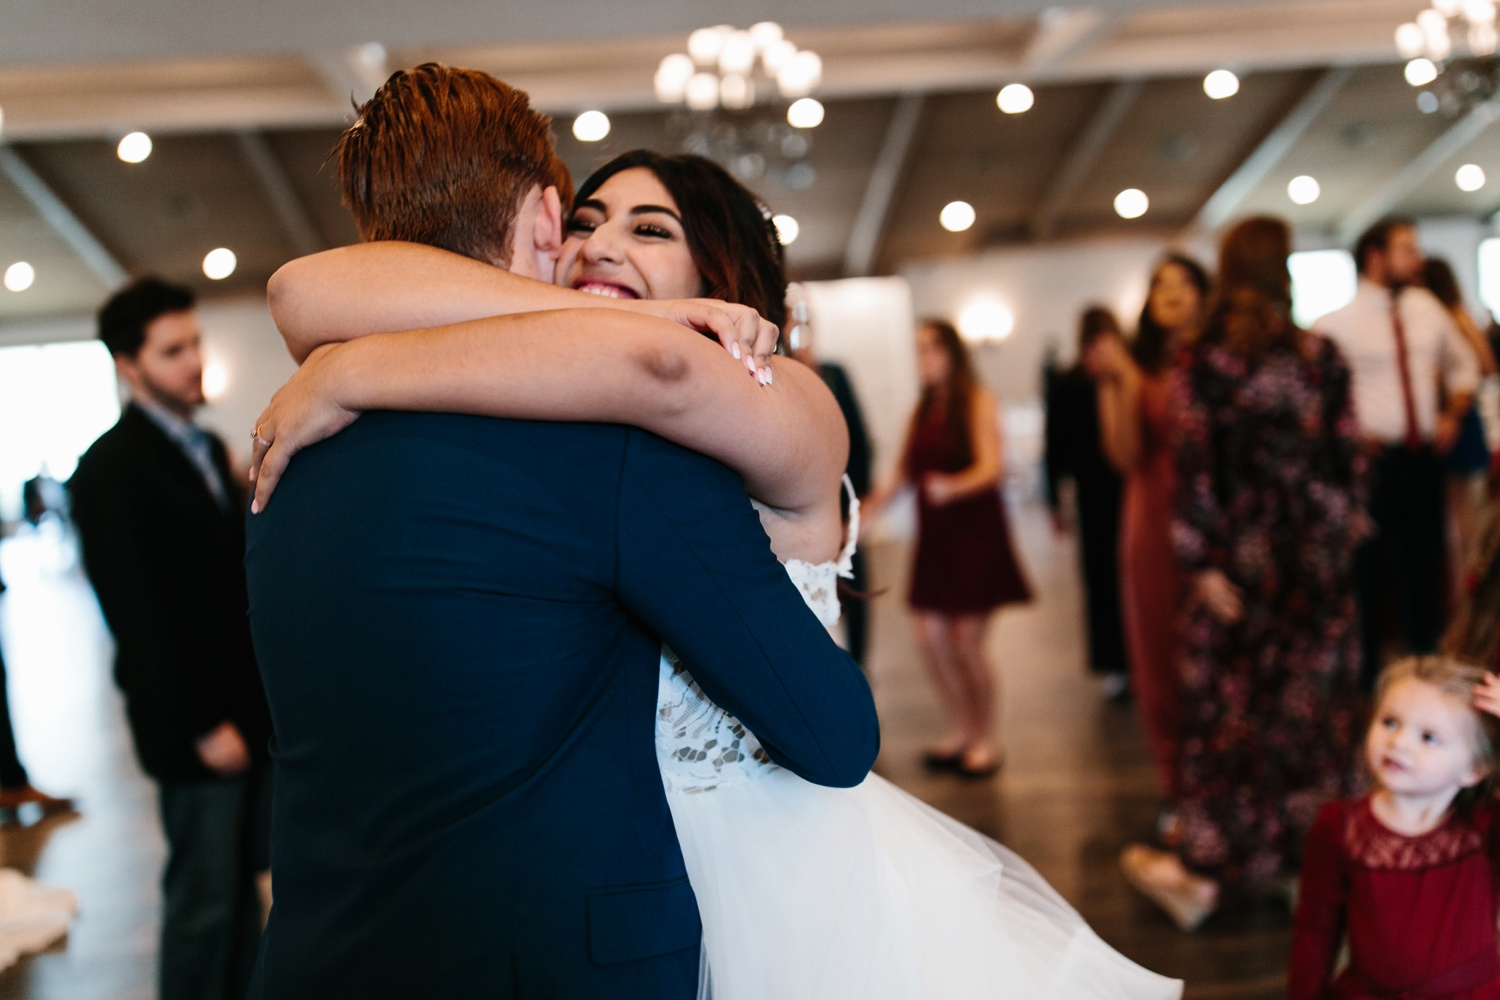 Grant + Lysette | a vibrant, deep burgundy and navy, and mixed metals wedding at Hidden Pines Chapel by North Texas Wedding Photographer Rachel Meagan Photography 168